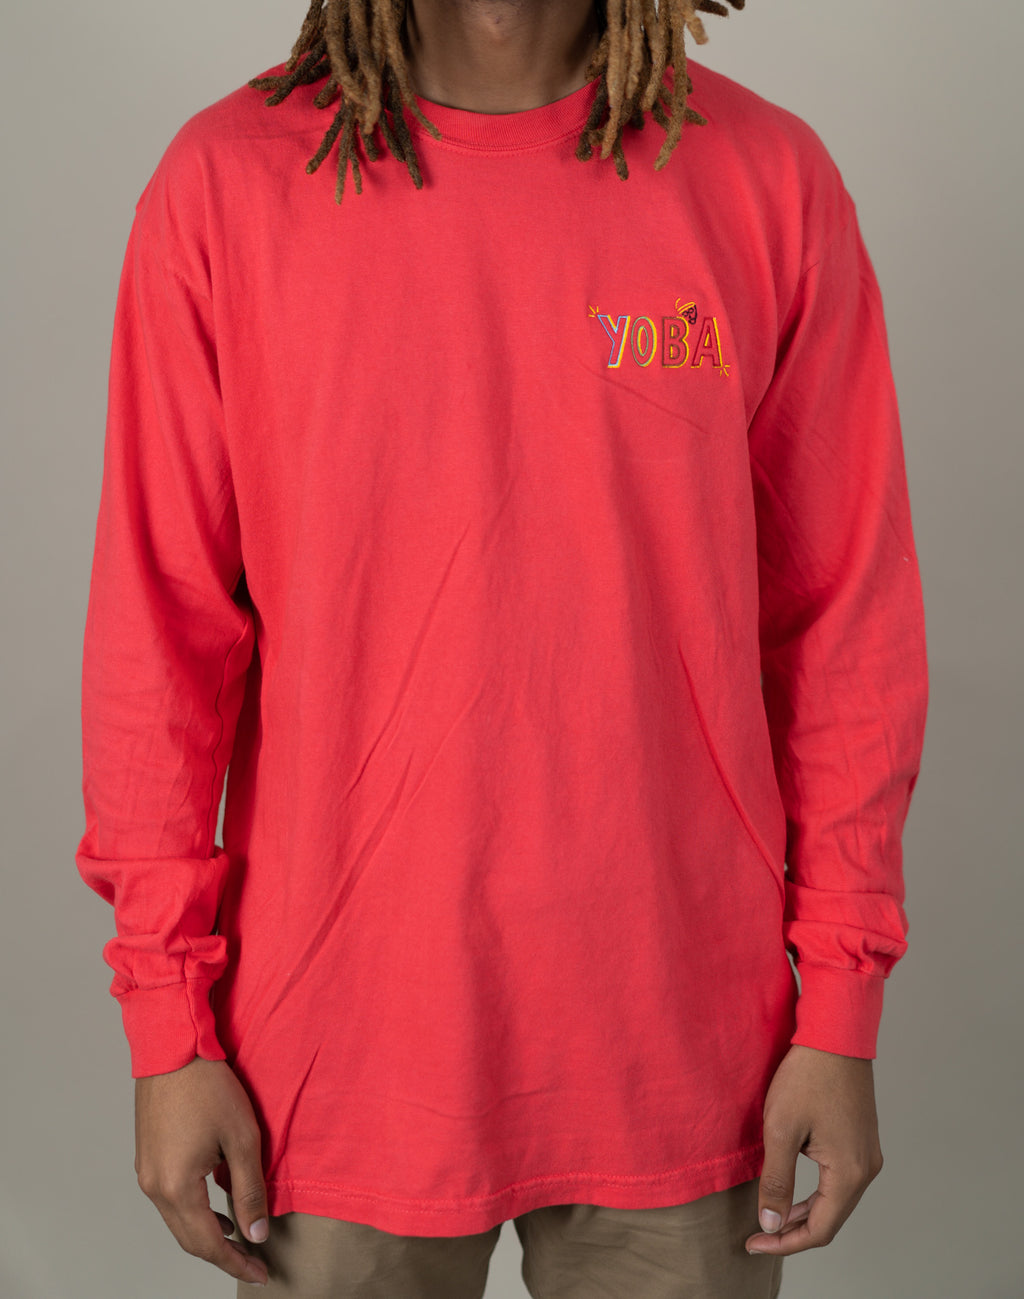 Yoba Long Sleeve